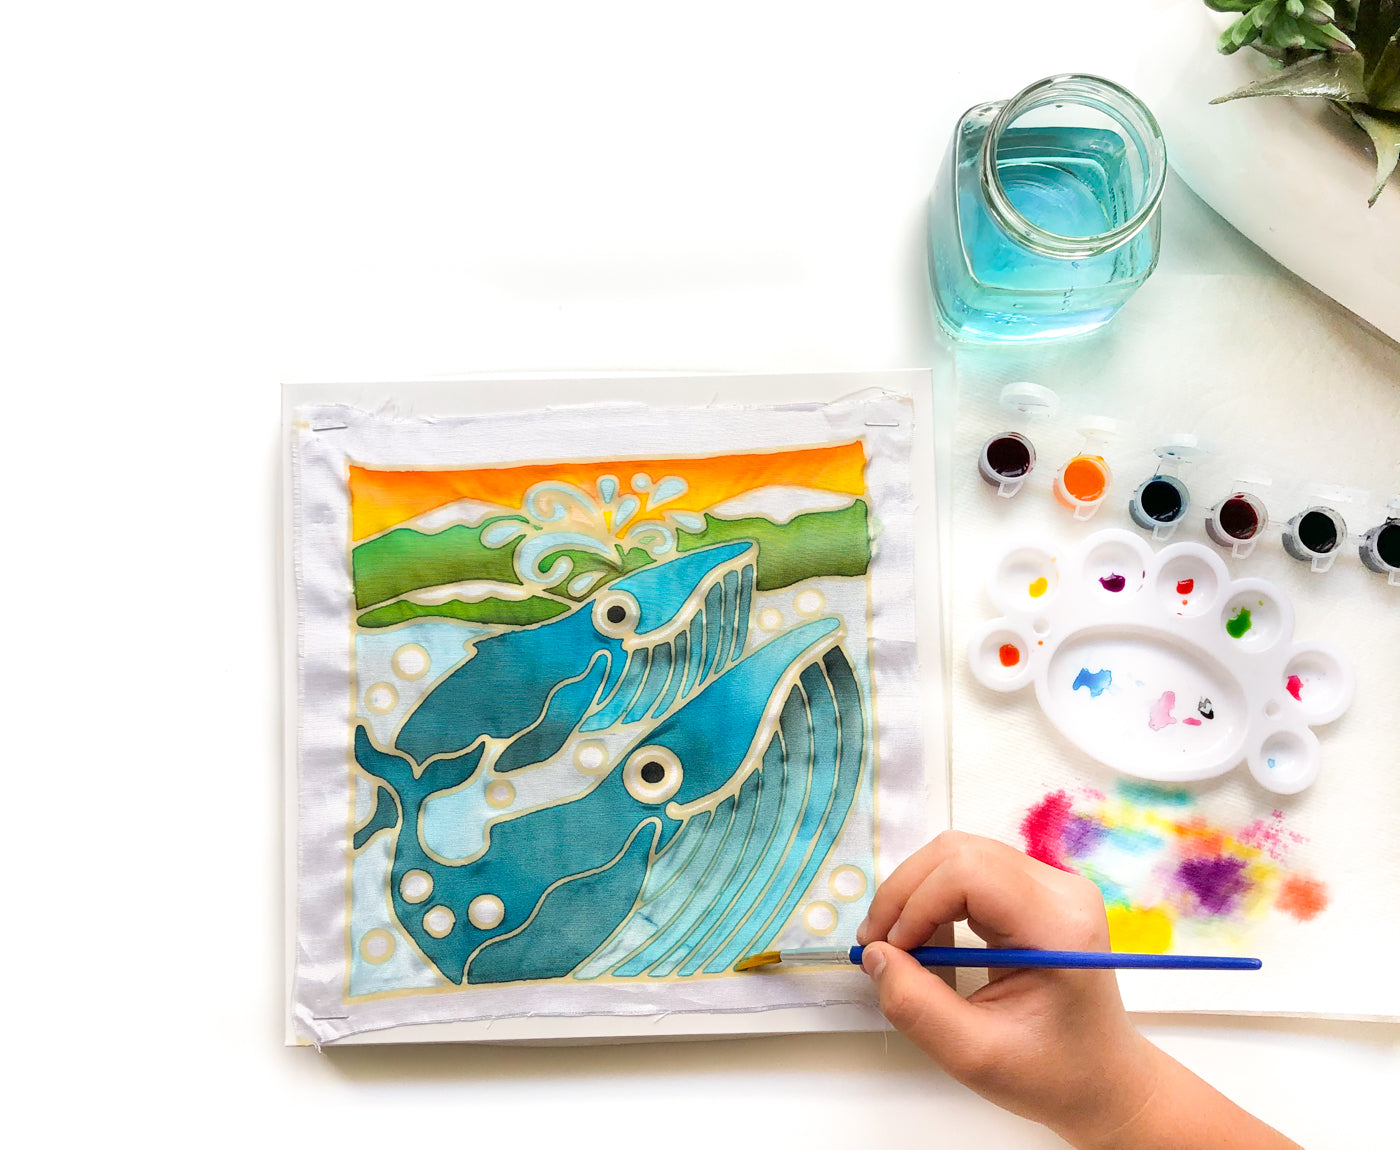 DIY Batik Whale Fabric Painting Kit - 8x8 Inch Pre Drawn Wax Design, Paint, Brush and Palette